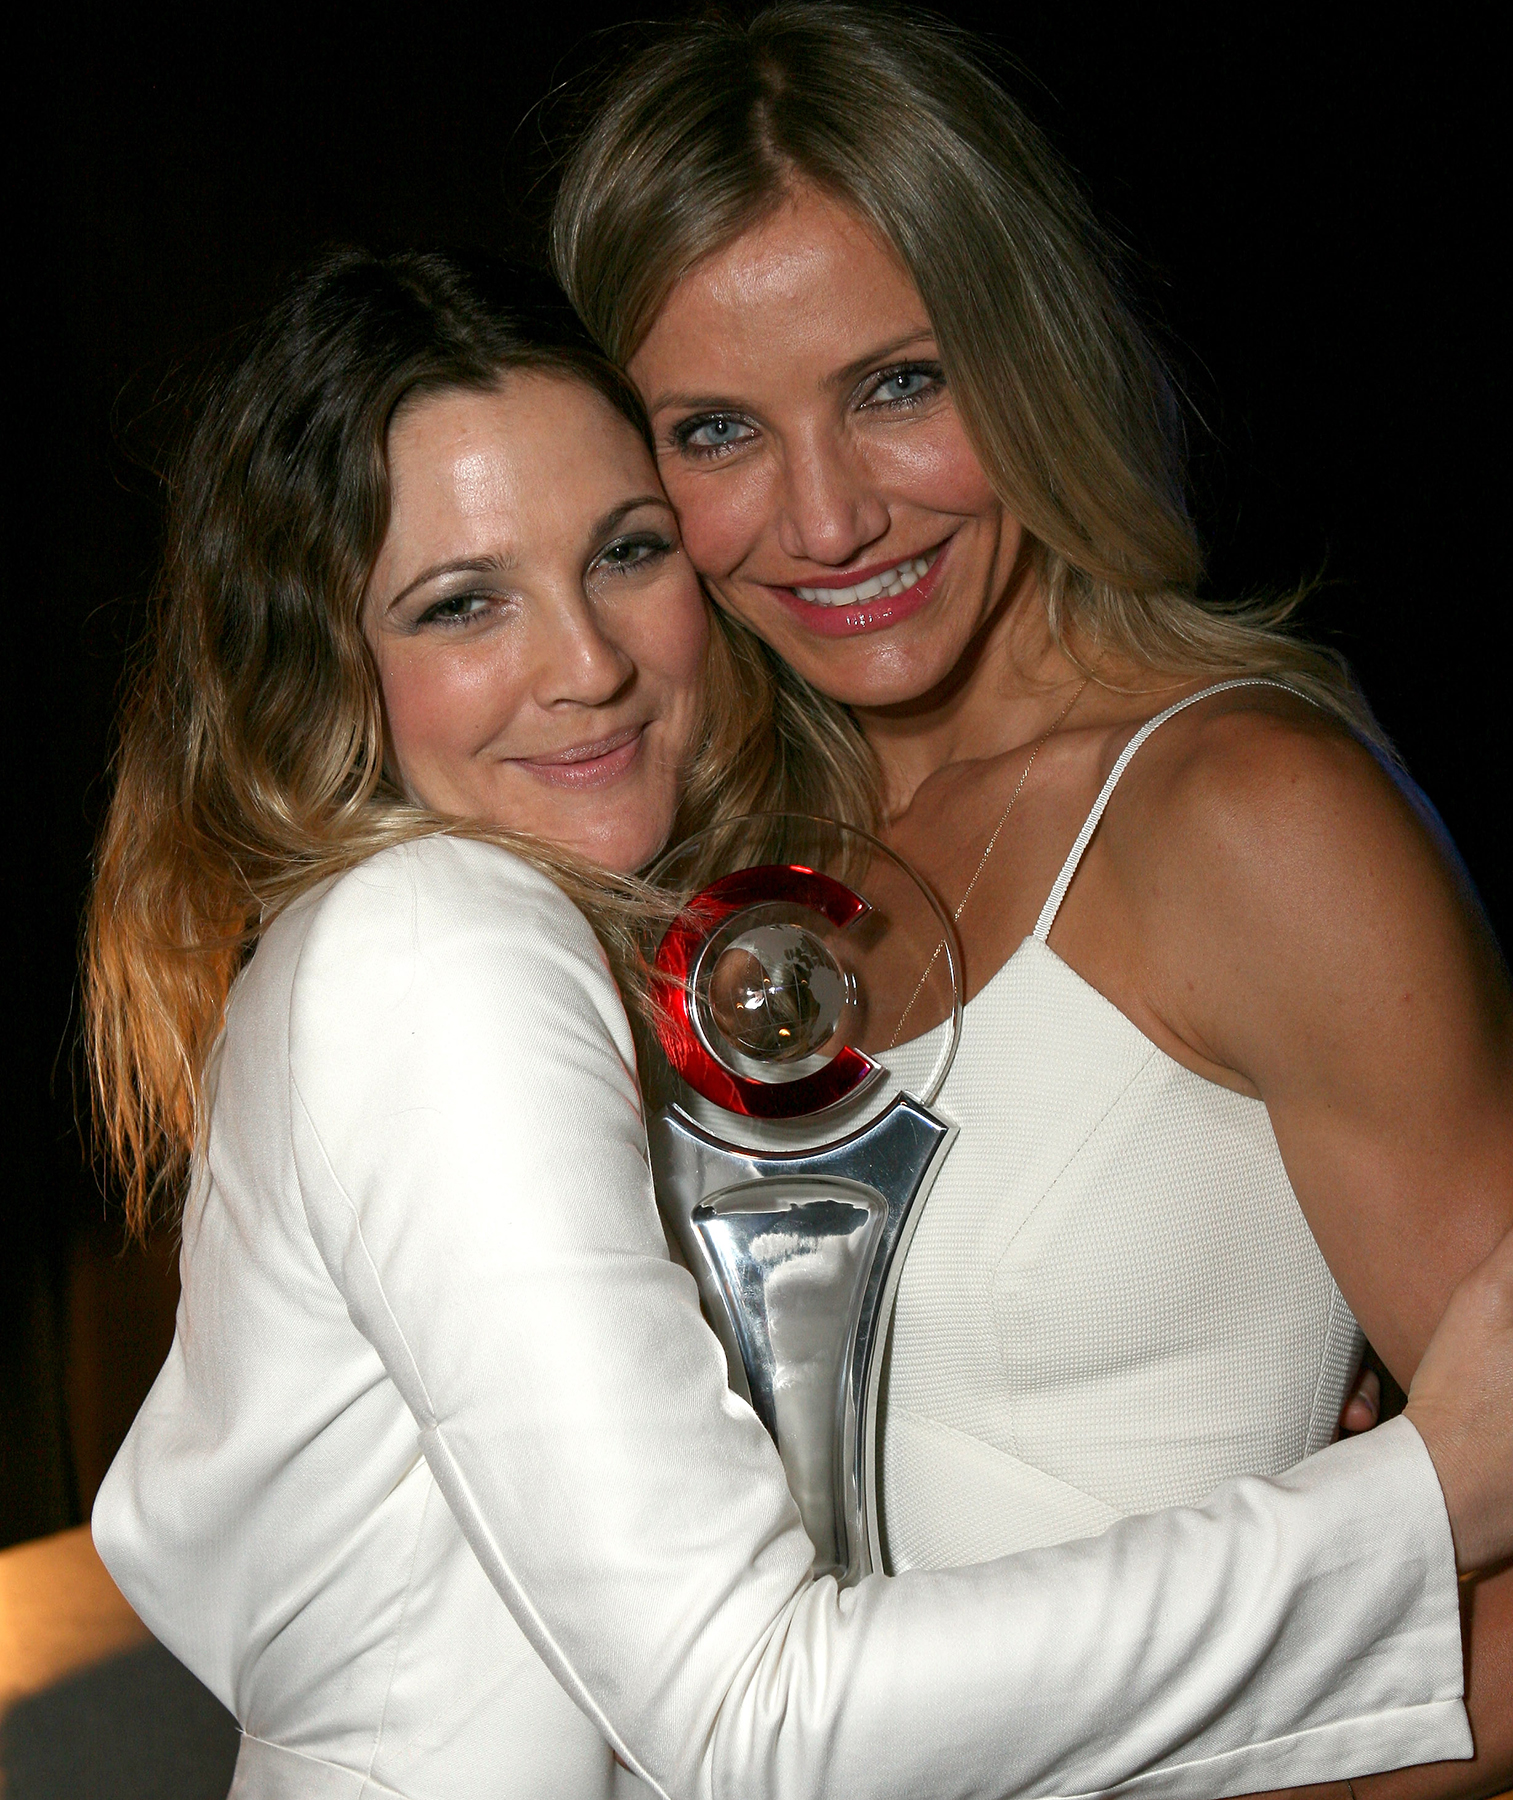 Drew Barrymore and Cameron Diaz